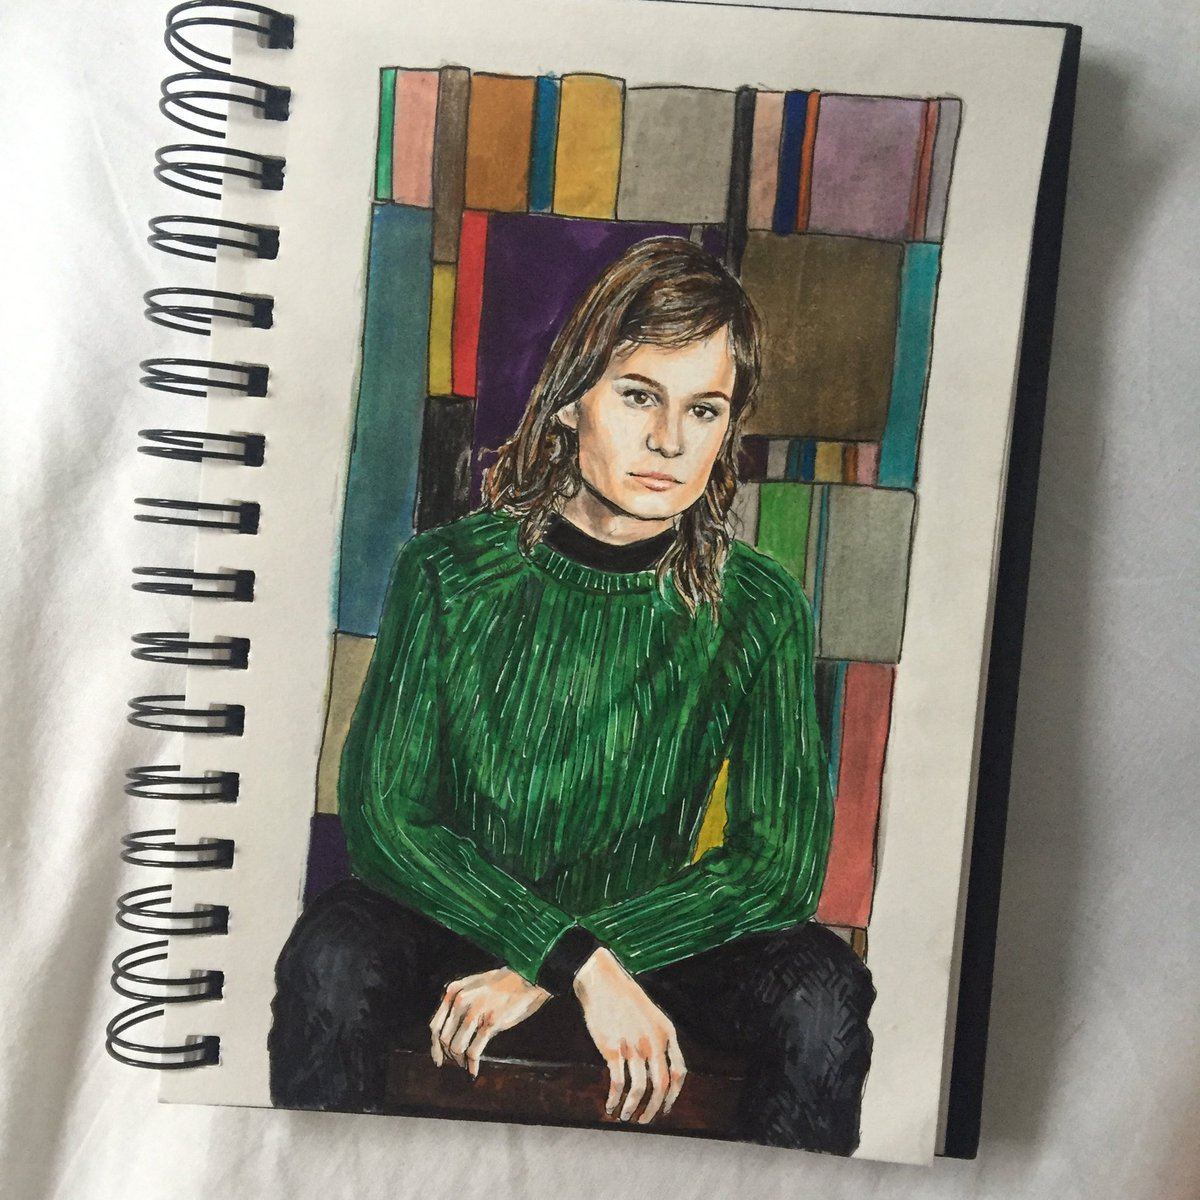 i did your face with magic marker @QueensChristine